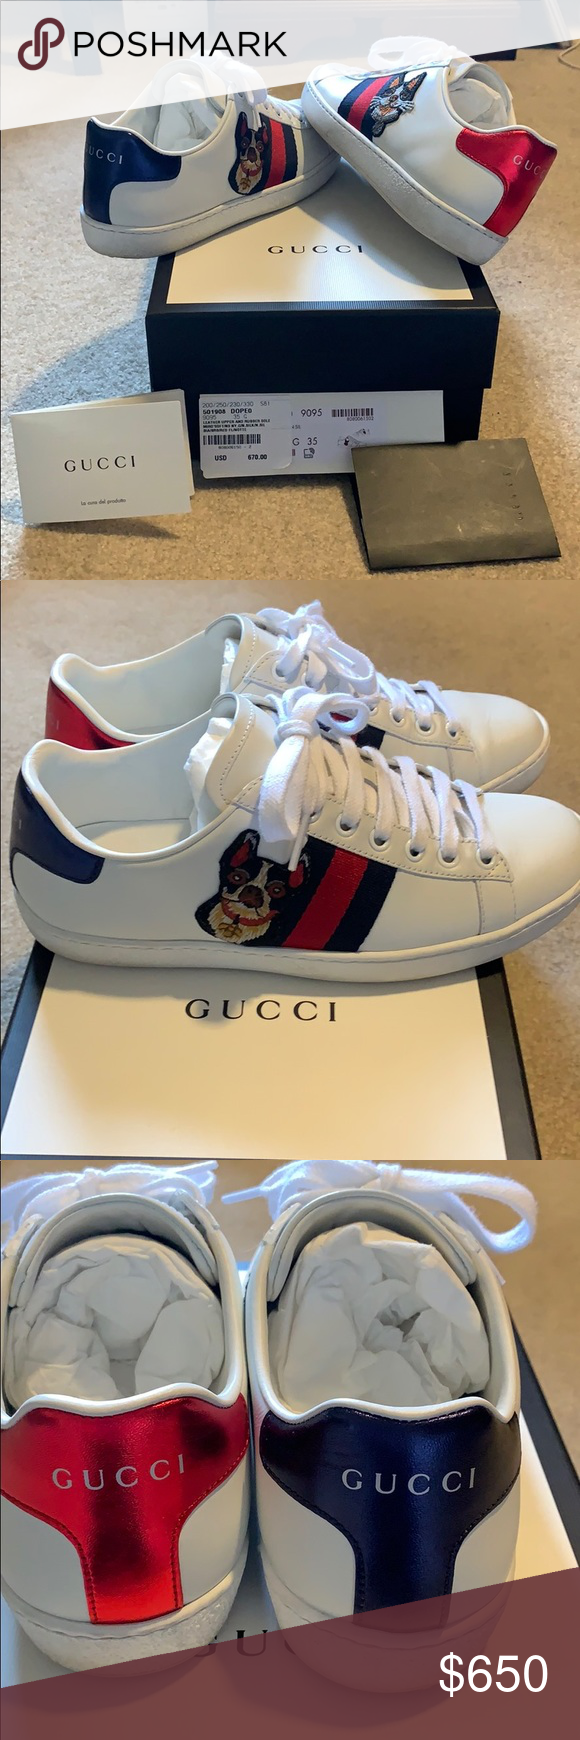 47b182e3b Gucci Ace Embroidered Sneakers - Dog Cult favorite Gucci Ace Sneakers. Used,  worn about